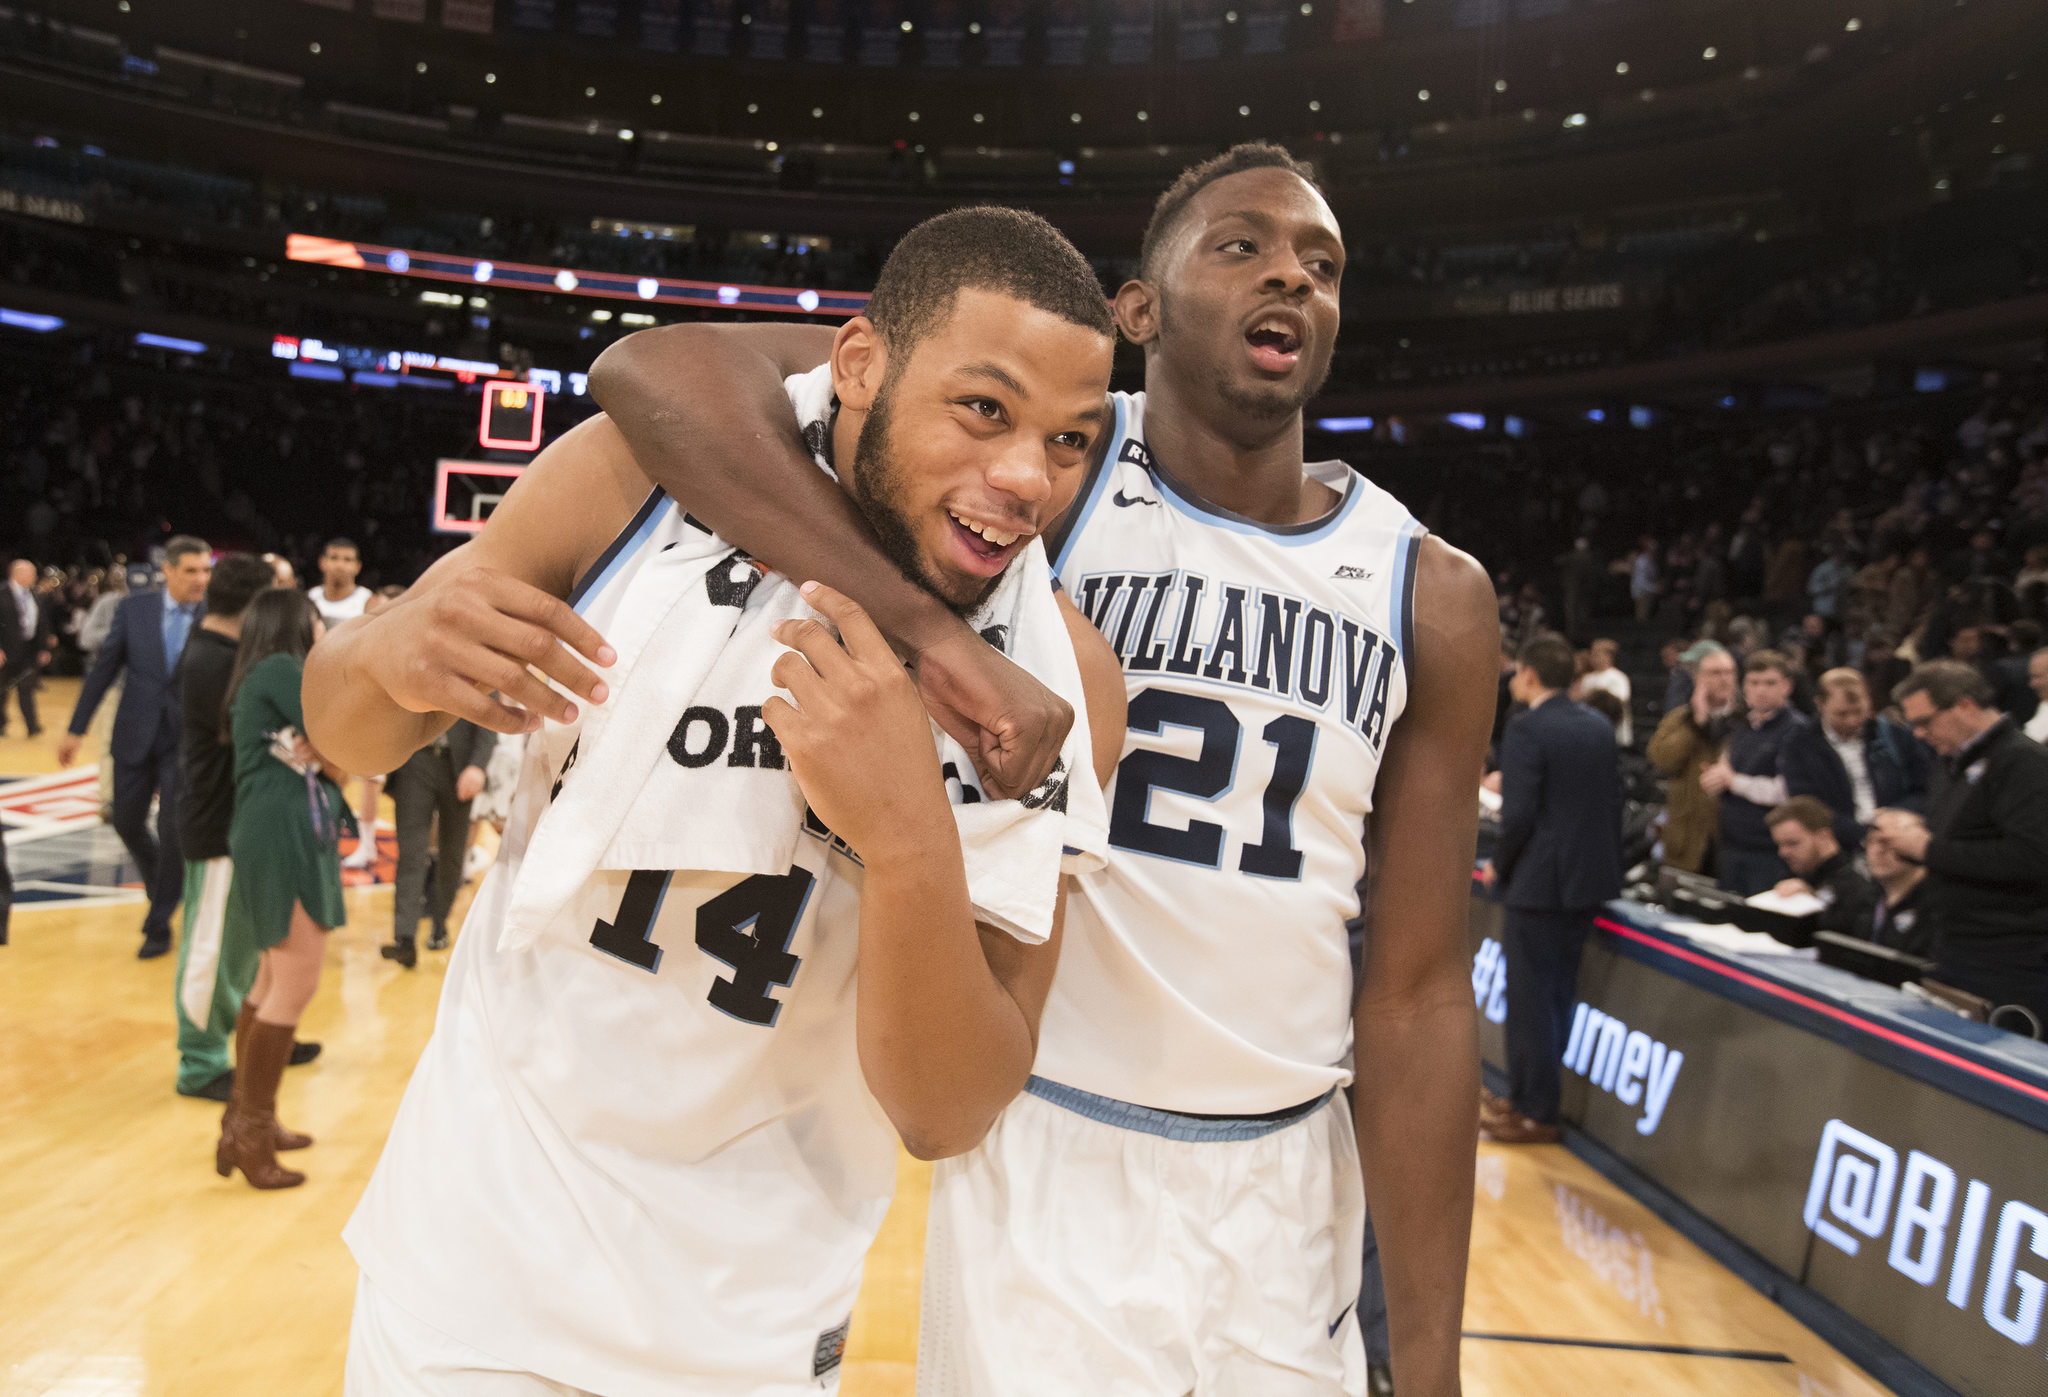 Omari Spellman, left, and Dhamir Cosby- Roundtree of Villanova leave the court in a jovial manner after defeating Butler in the Big East Tournament semi-finals at Madison Square Garden on March 9, 2018